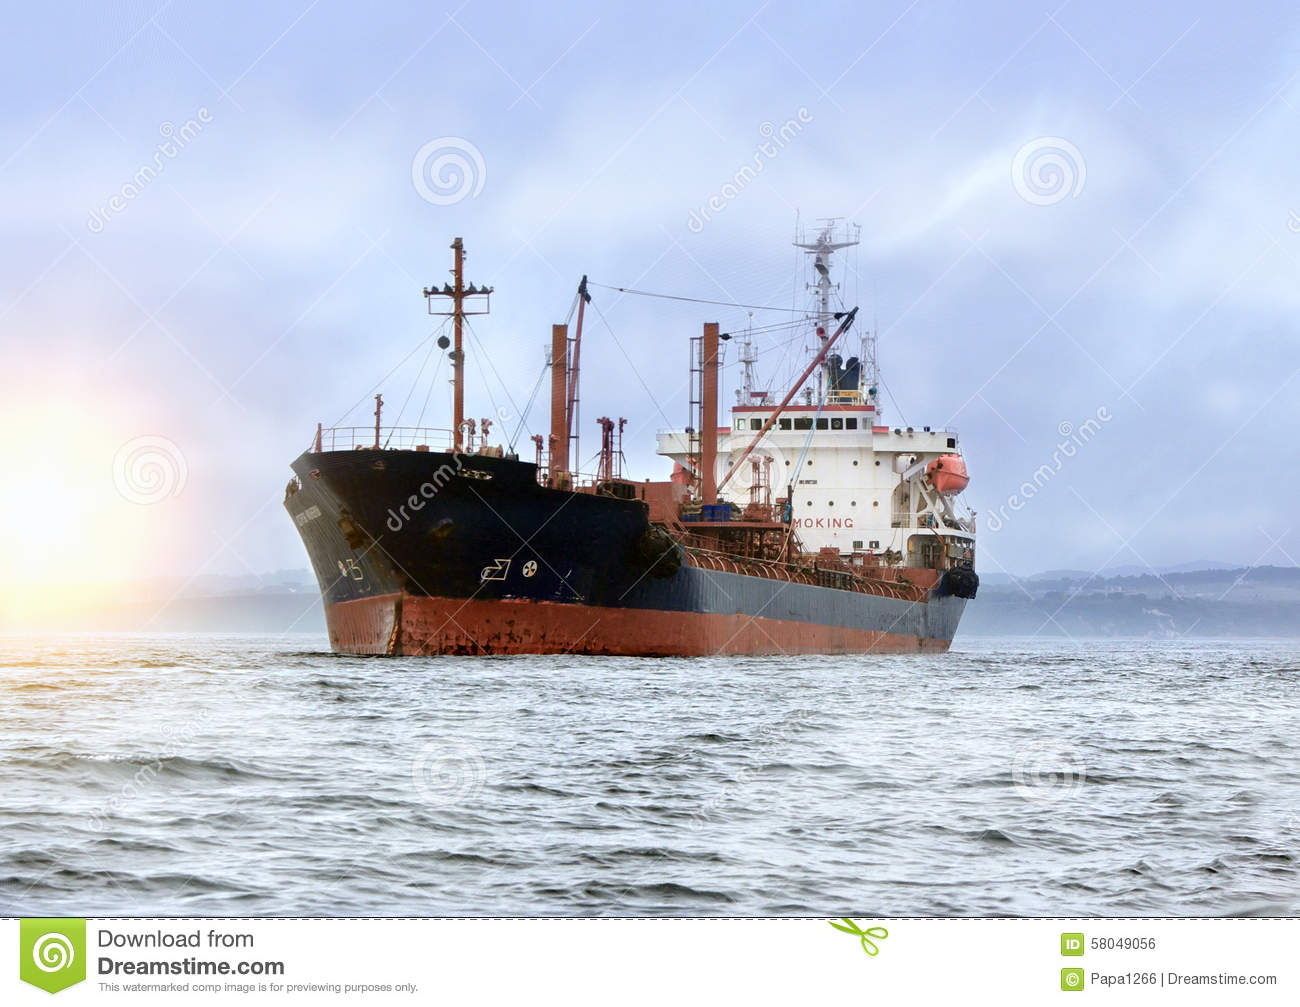 Large cargo ship at sea